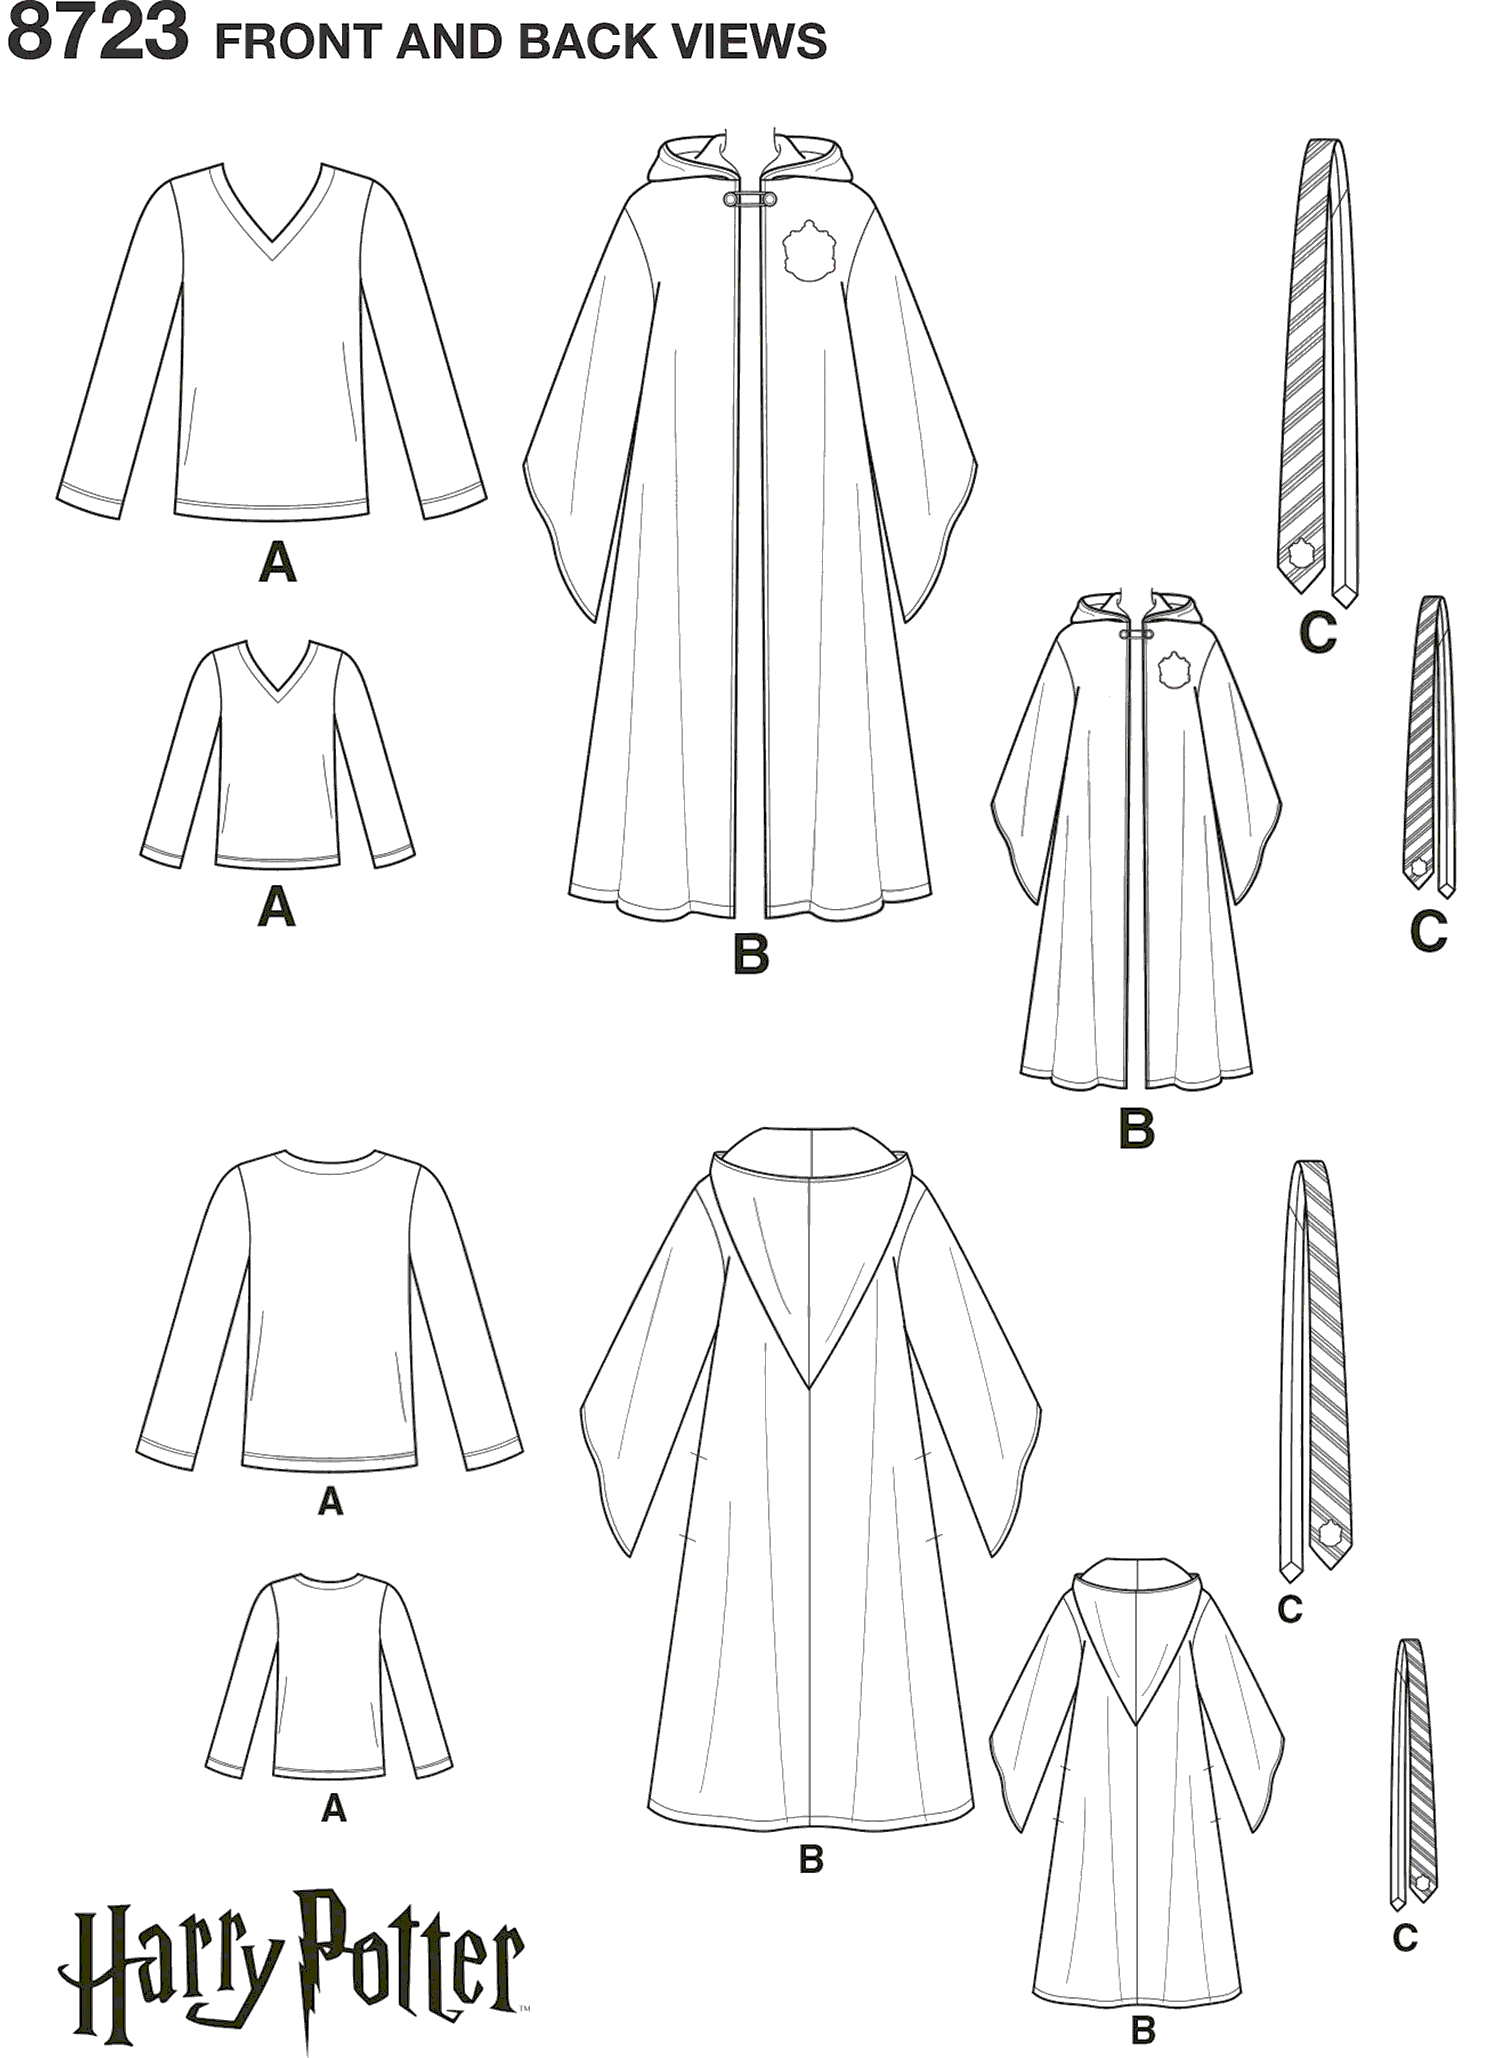 Simplicity Pattern 8723 Harry Potter Unisex Costumes Line Art From Patternsandplains.com